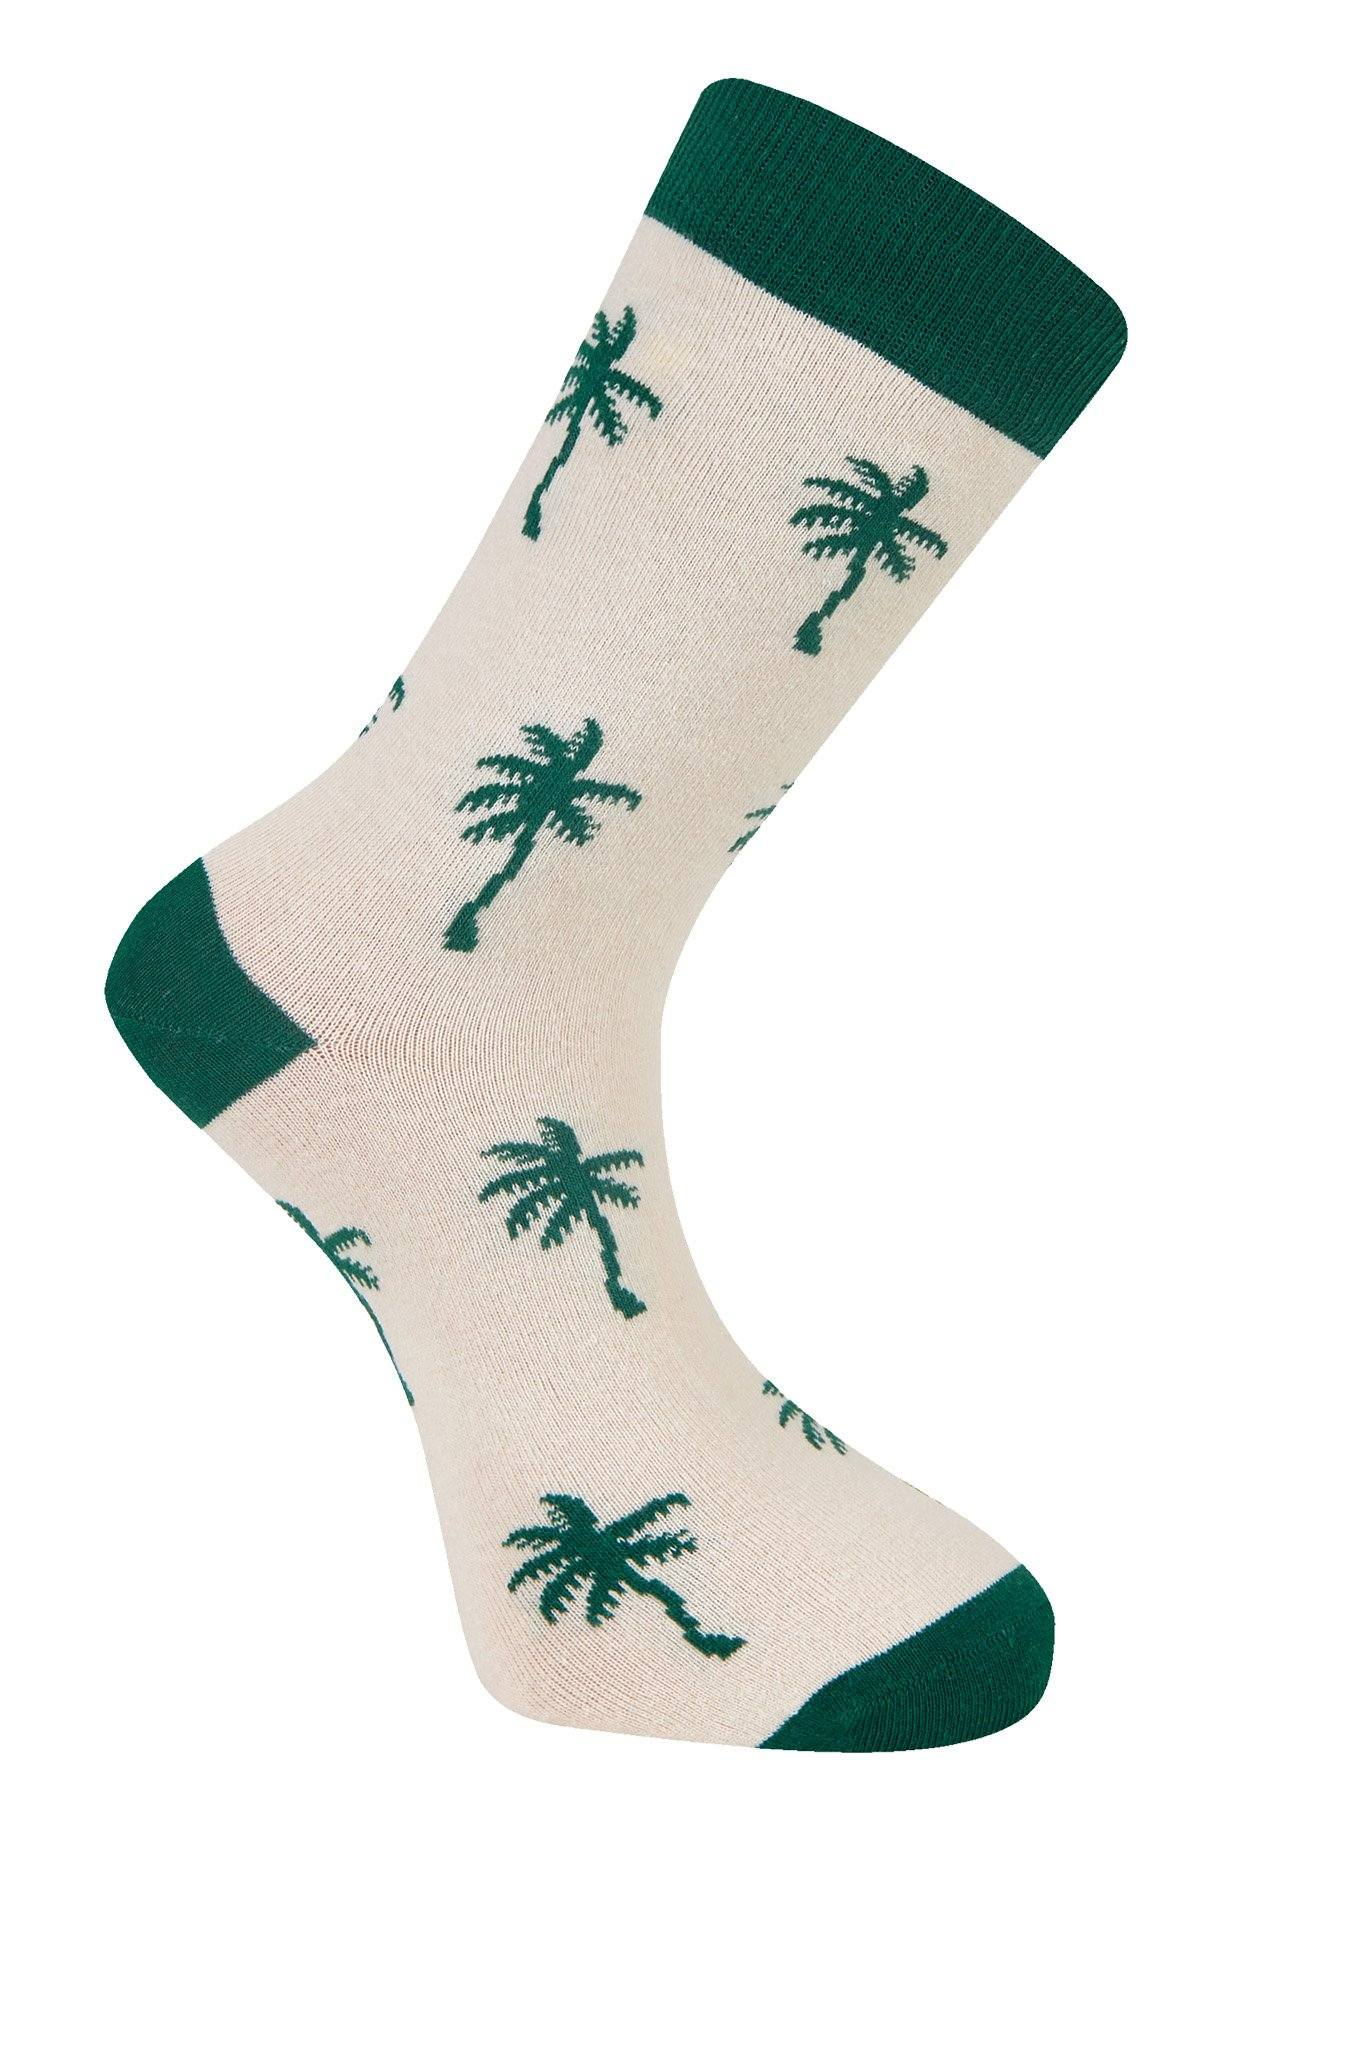 PALM TREE Emerald Organic Cotton Socks - Komodo Fashion